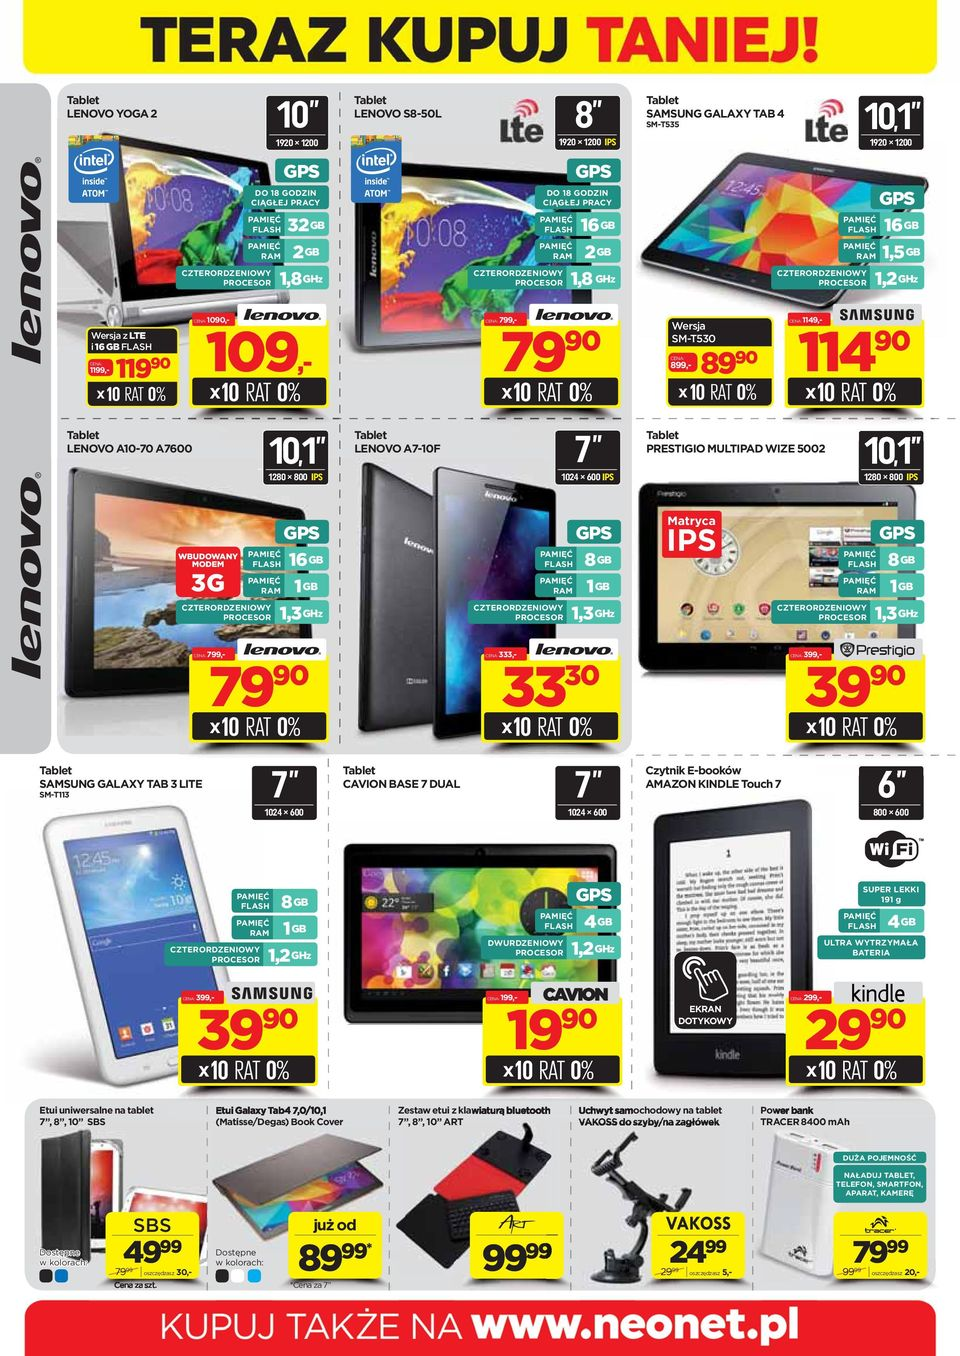 1149,- Tablet LENOVO A10-70 A7600 10,1 1280 800 IPS Tablet LENOVO A7-10F 7 1024 600 IPS Tablet PRESTIGIO MULTIPAD WIZE 5002 10,1 1280 800 IPS WBUDOWANY MODEM 3G FLASH RAM GPS 16 GB 1 GB FLASH RAM GPS